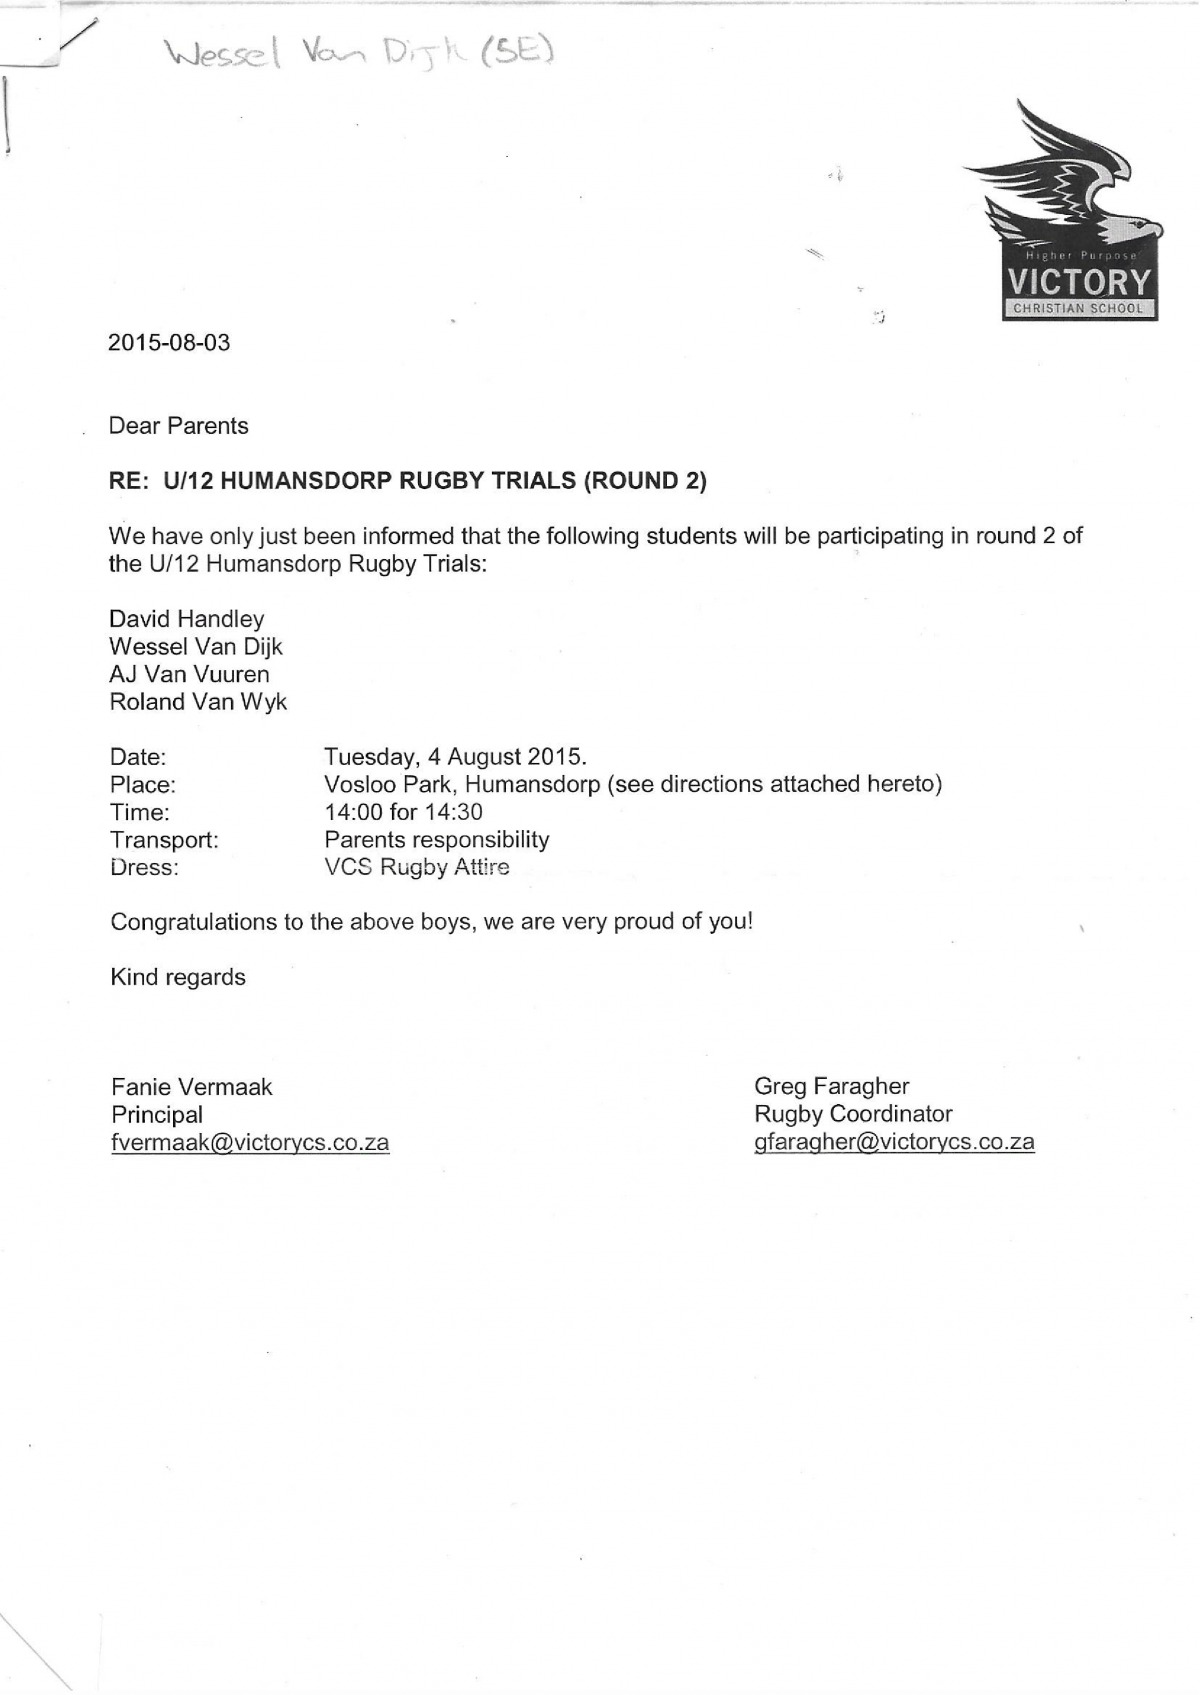 A letter stating that Wessel forms part of the second round of the u12 Humansdorp Rugby Trials